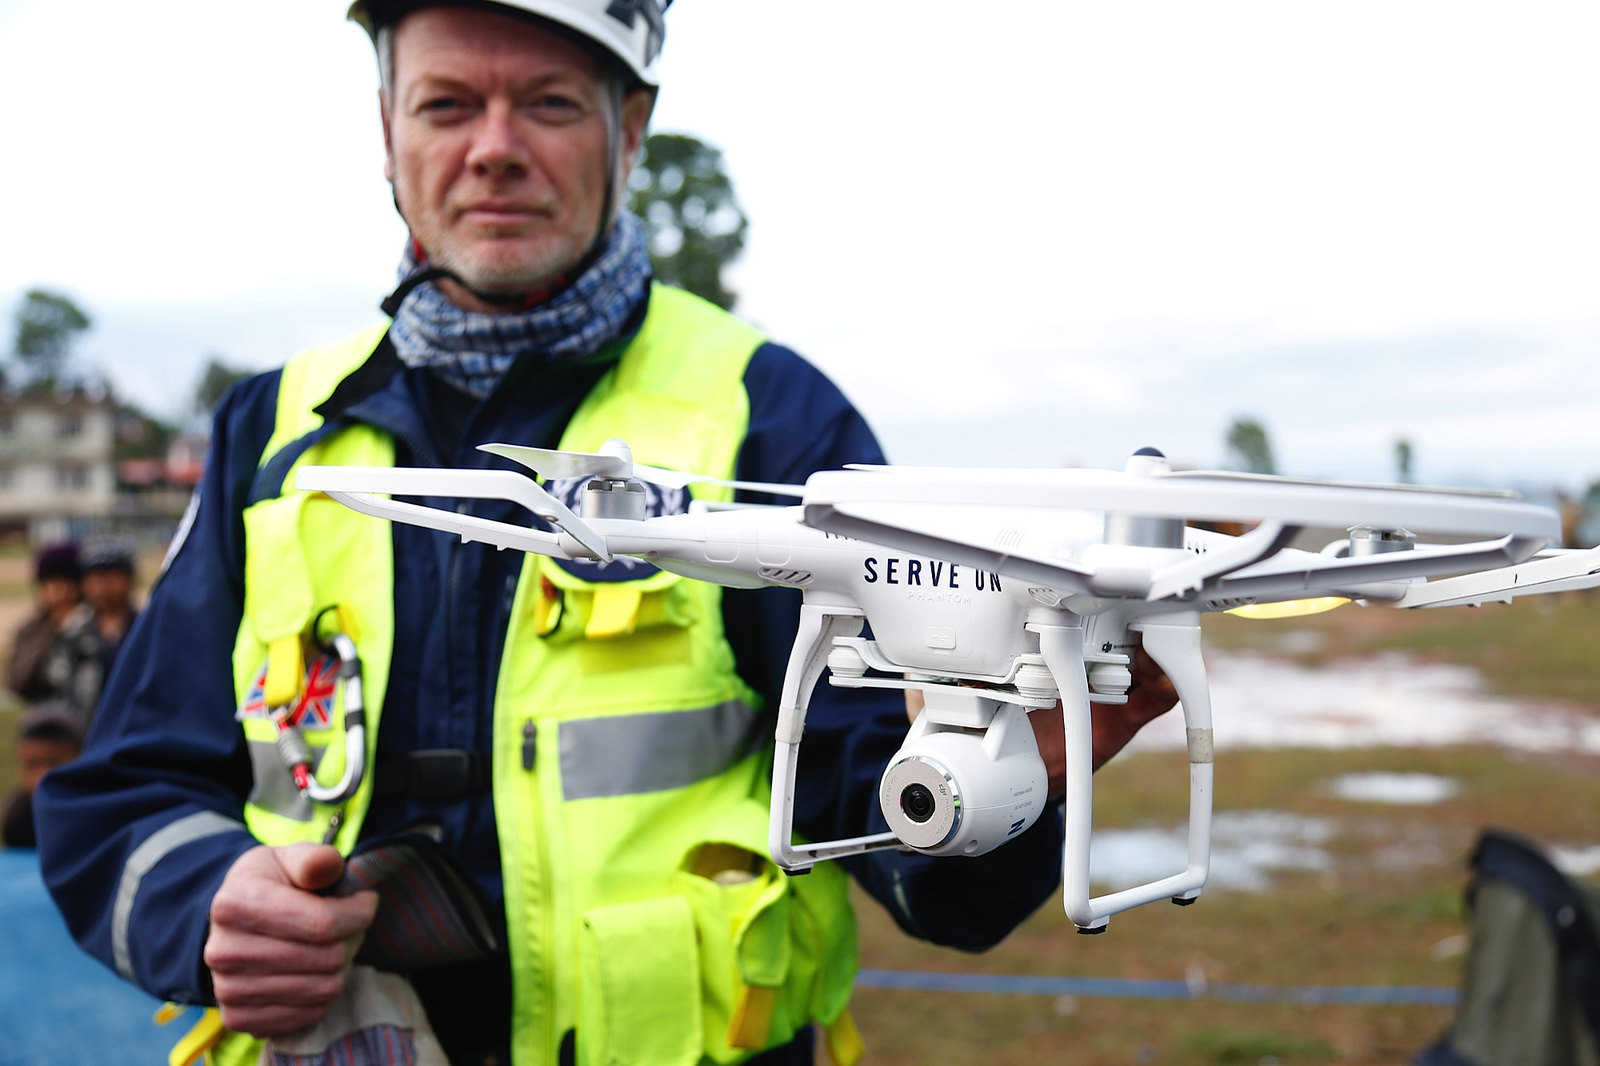 Drone surveillance helps search and rescue in Nepal, DFID - UK Department for International Development April 29, 2015